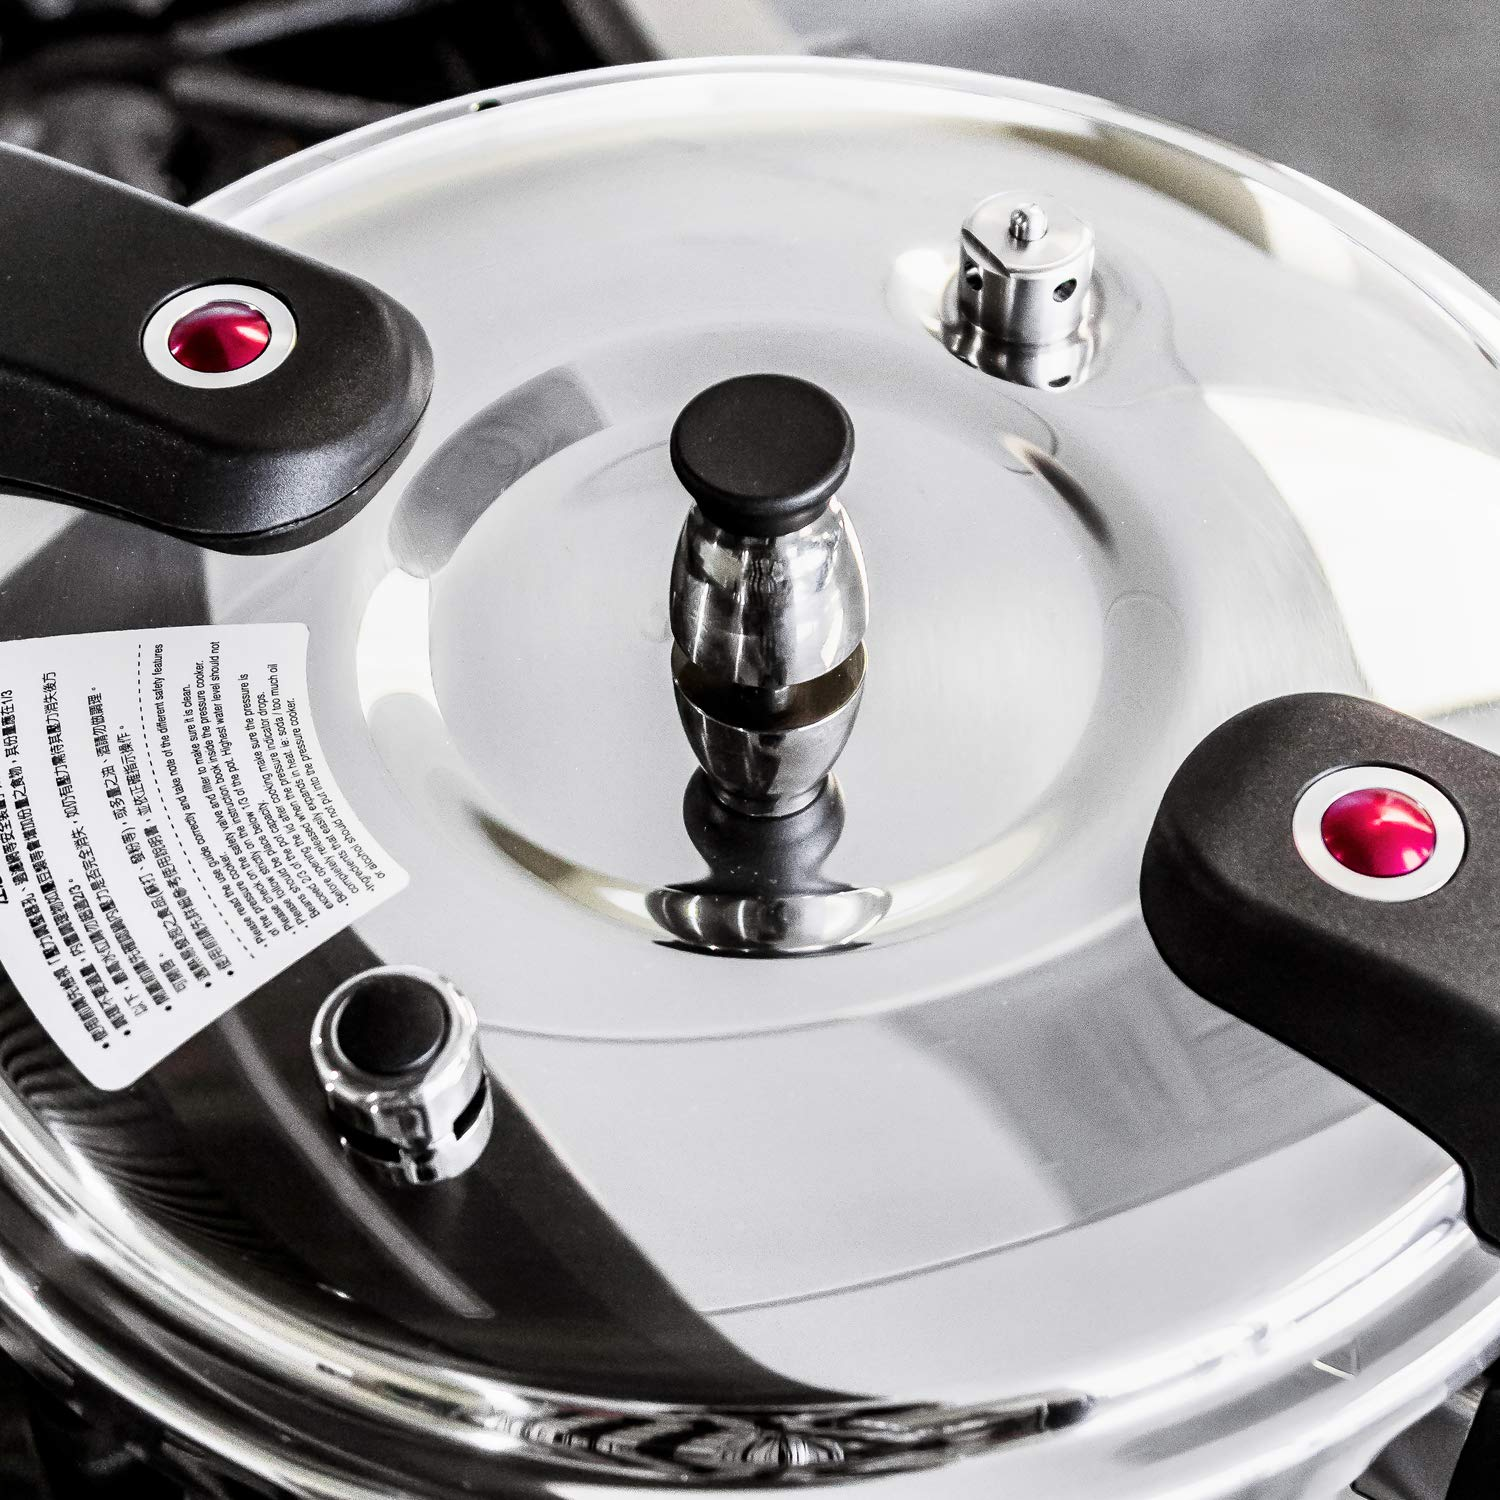 Buffalo QCP415 15-Quart Stainless Steel Pressure Cooker [Classic series] by Buffalo (Image #3)